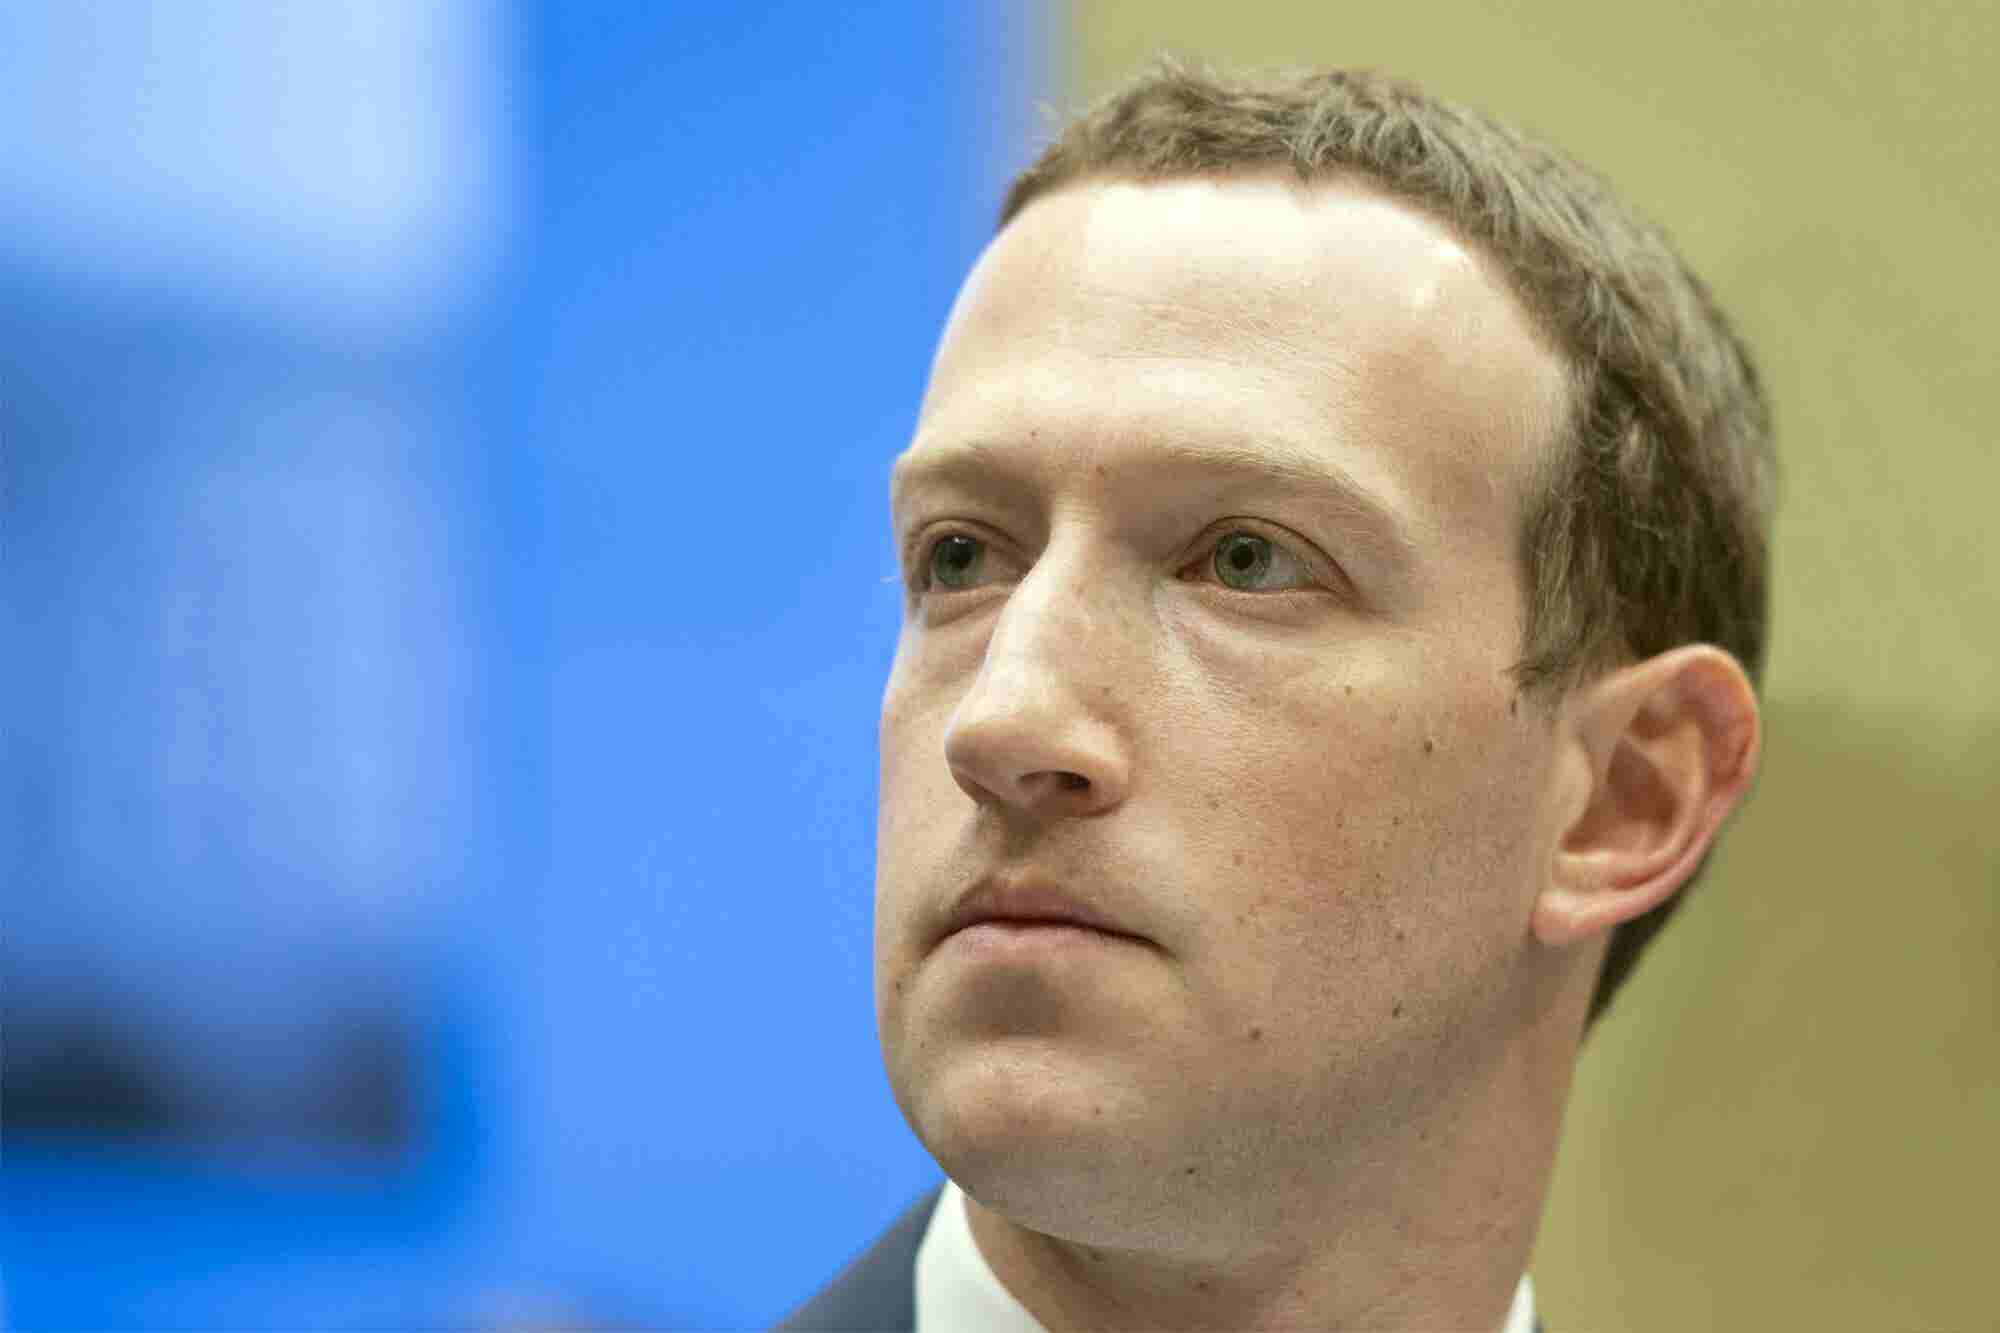 Hacker Says He'll Livestream Deletion of Mark Zuckerberg's Facebook Page